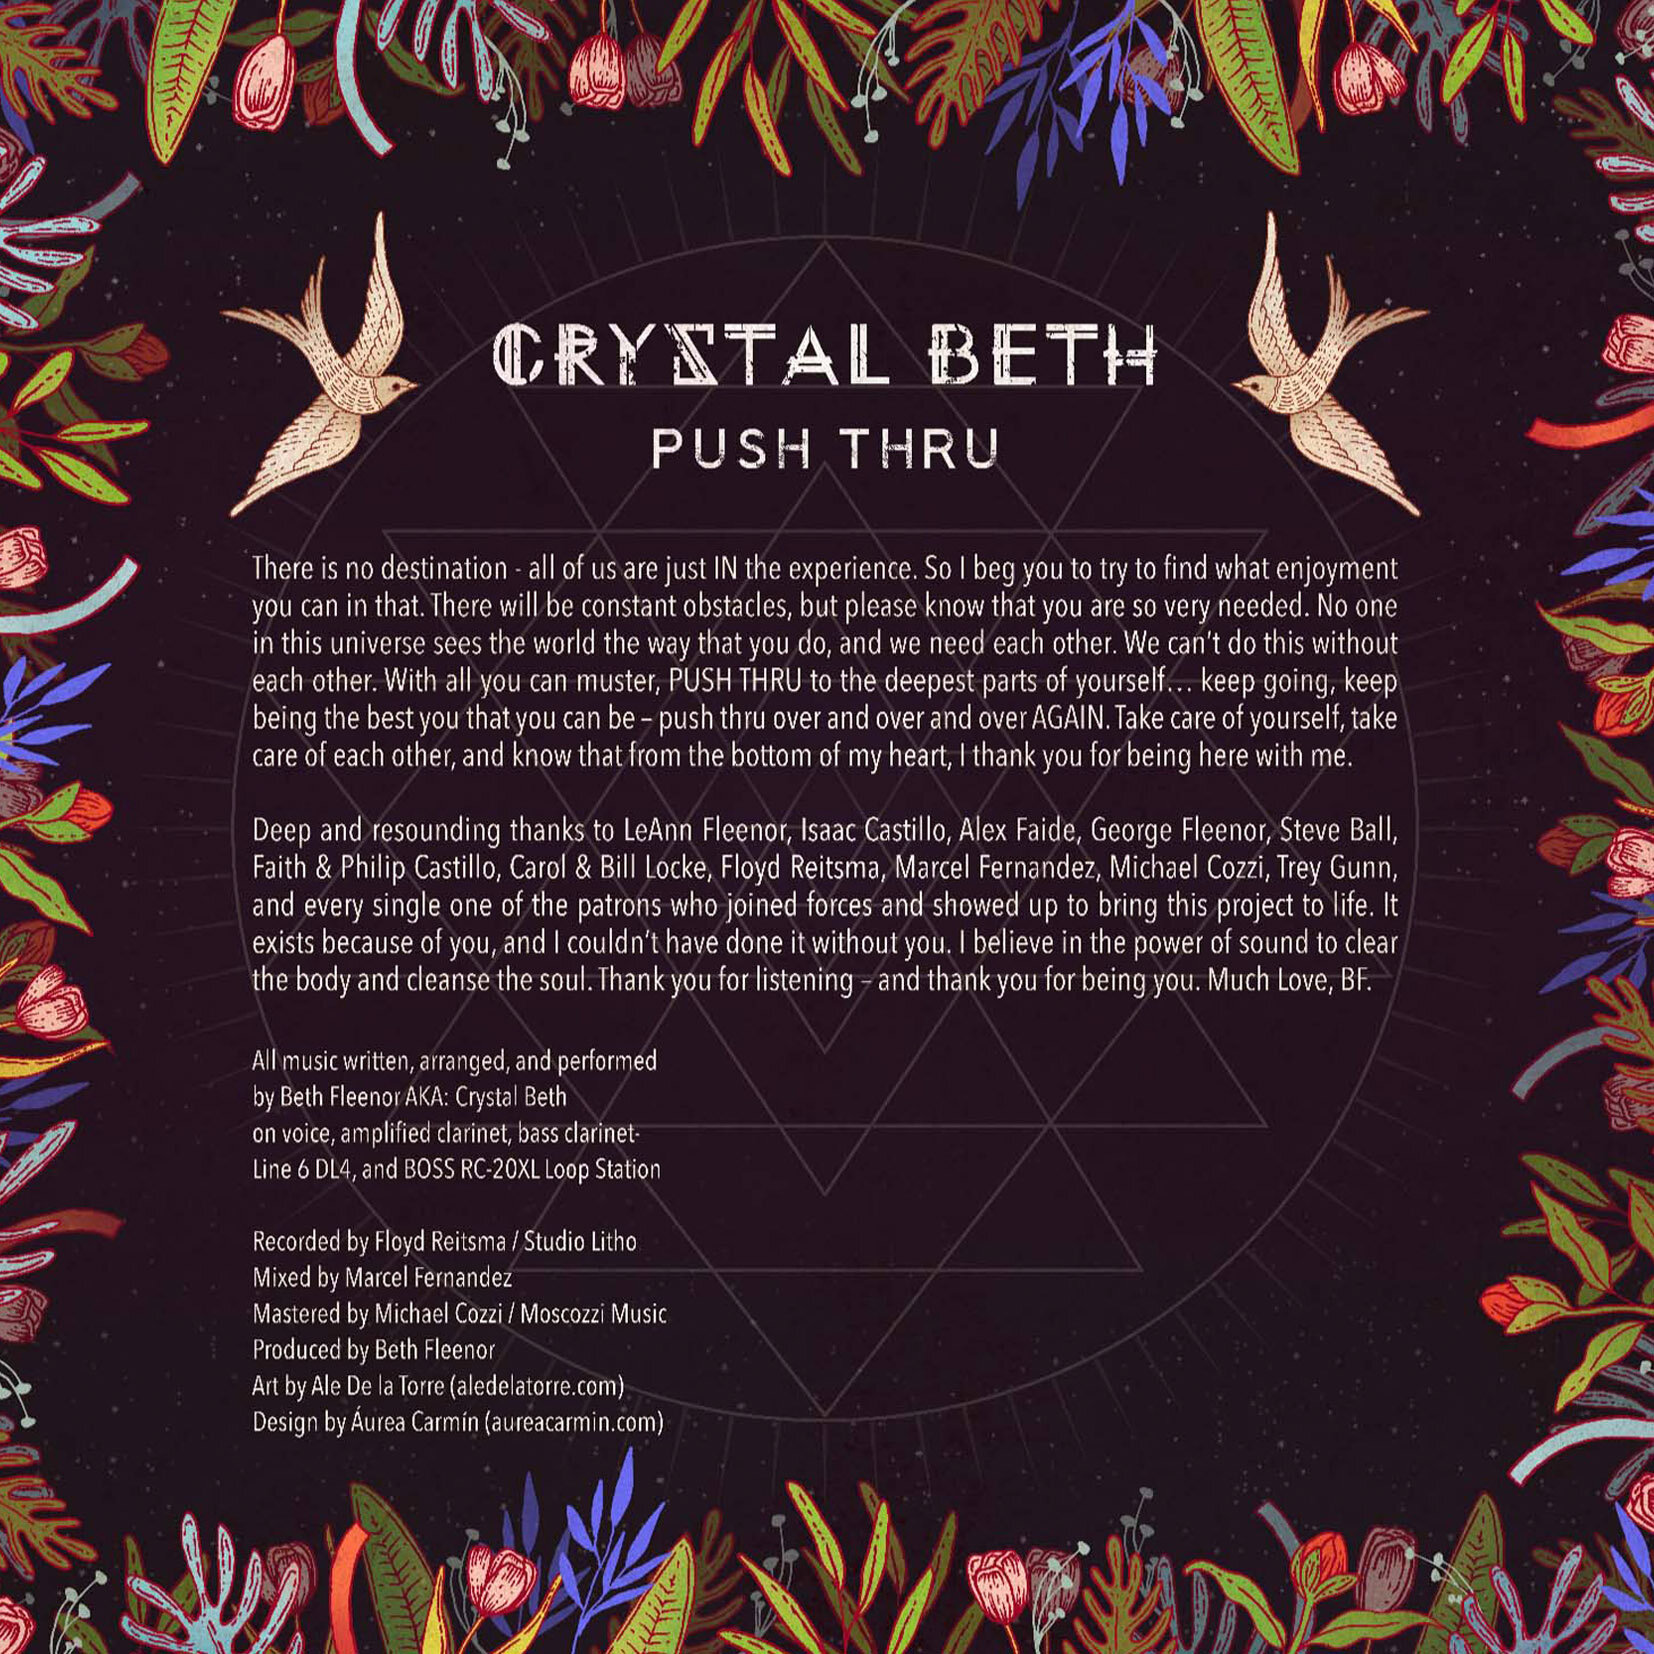 Art for Crystal Beth's  Push Thru  album by Ale De la Torre. Album back cover art for CD and vinyl.